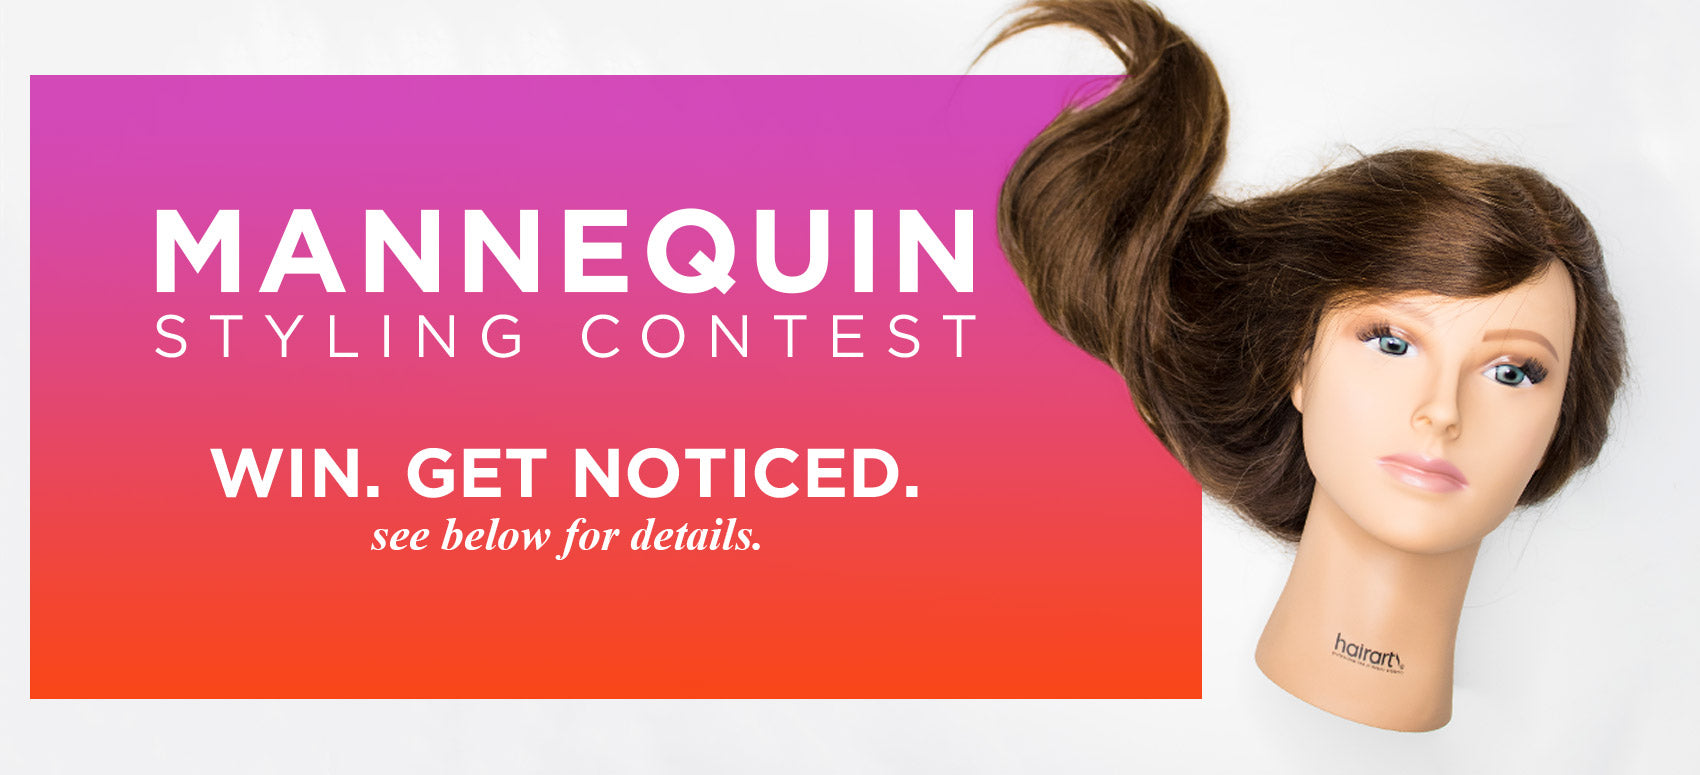 Mannequin Color / Cut / Styling Contest